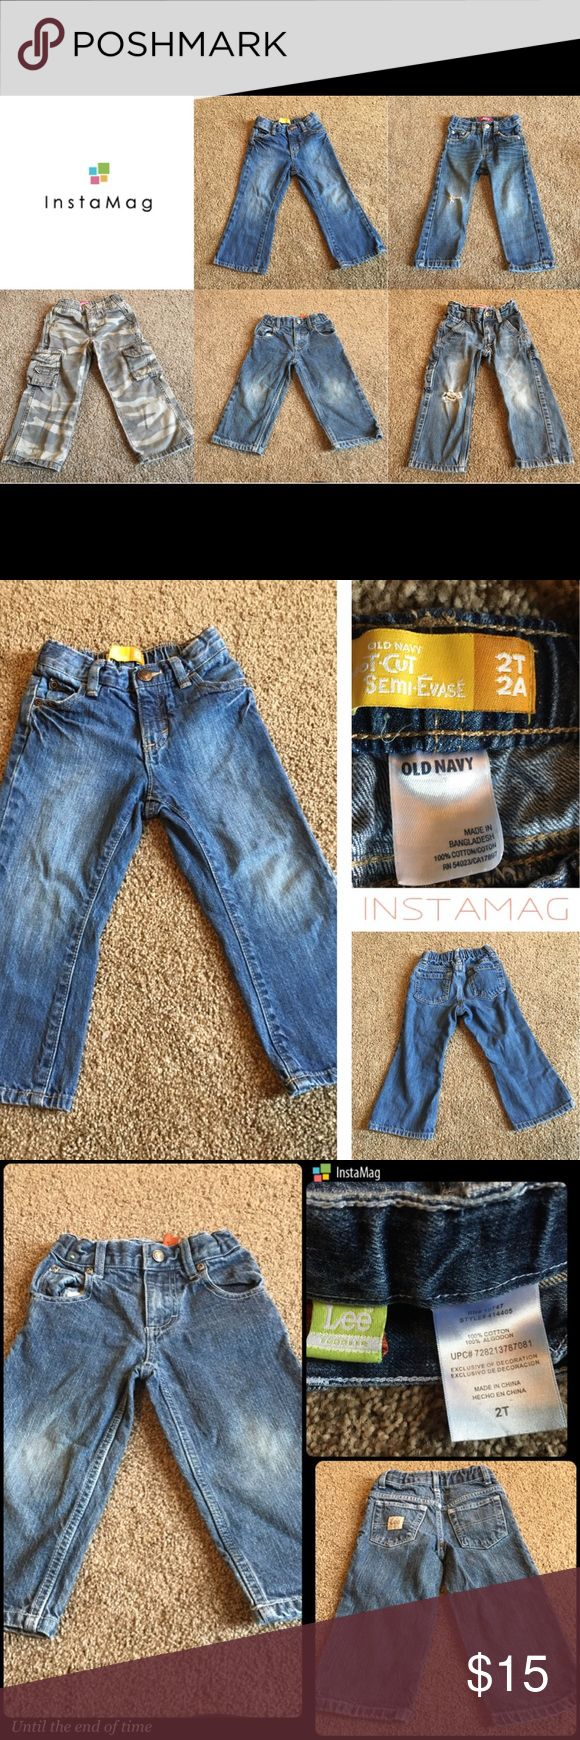 2T Boys Jean Bundle of 5 w/Adjustable Waist Band 5 pairs of toddler jeans. All Jeans are a 2T in size and have an Adjustable Waist Band inside. Gently used and any imperfections are listed below and shown in pictures.   * Old Navy Bootcut Semi-Evase * Lee Toddlers * Levi 514 Slim Straight - (tear on left knee) * Levi's 549 Relaxed Straight - Camouflage  * Levi Painter - (tear on left knee)  Gently used. All items come from a clean smoke/pet free home. thanks ☺️ Levi's Bottoms Jeans